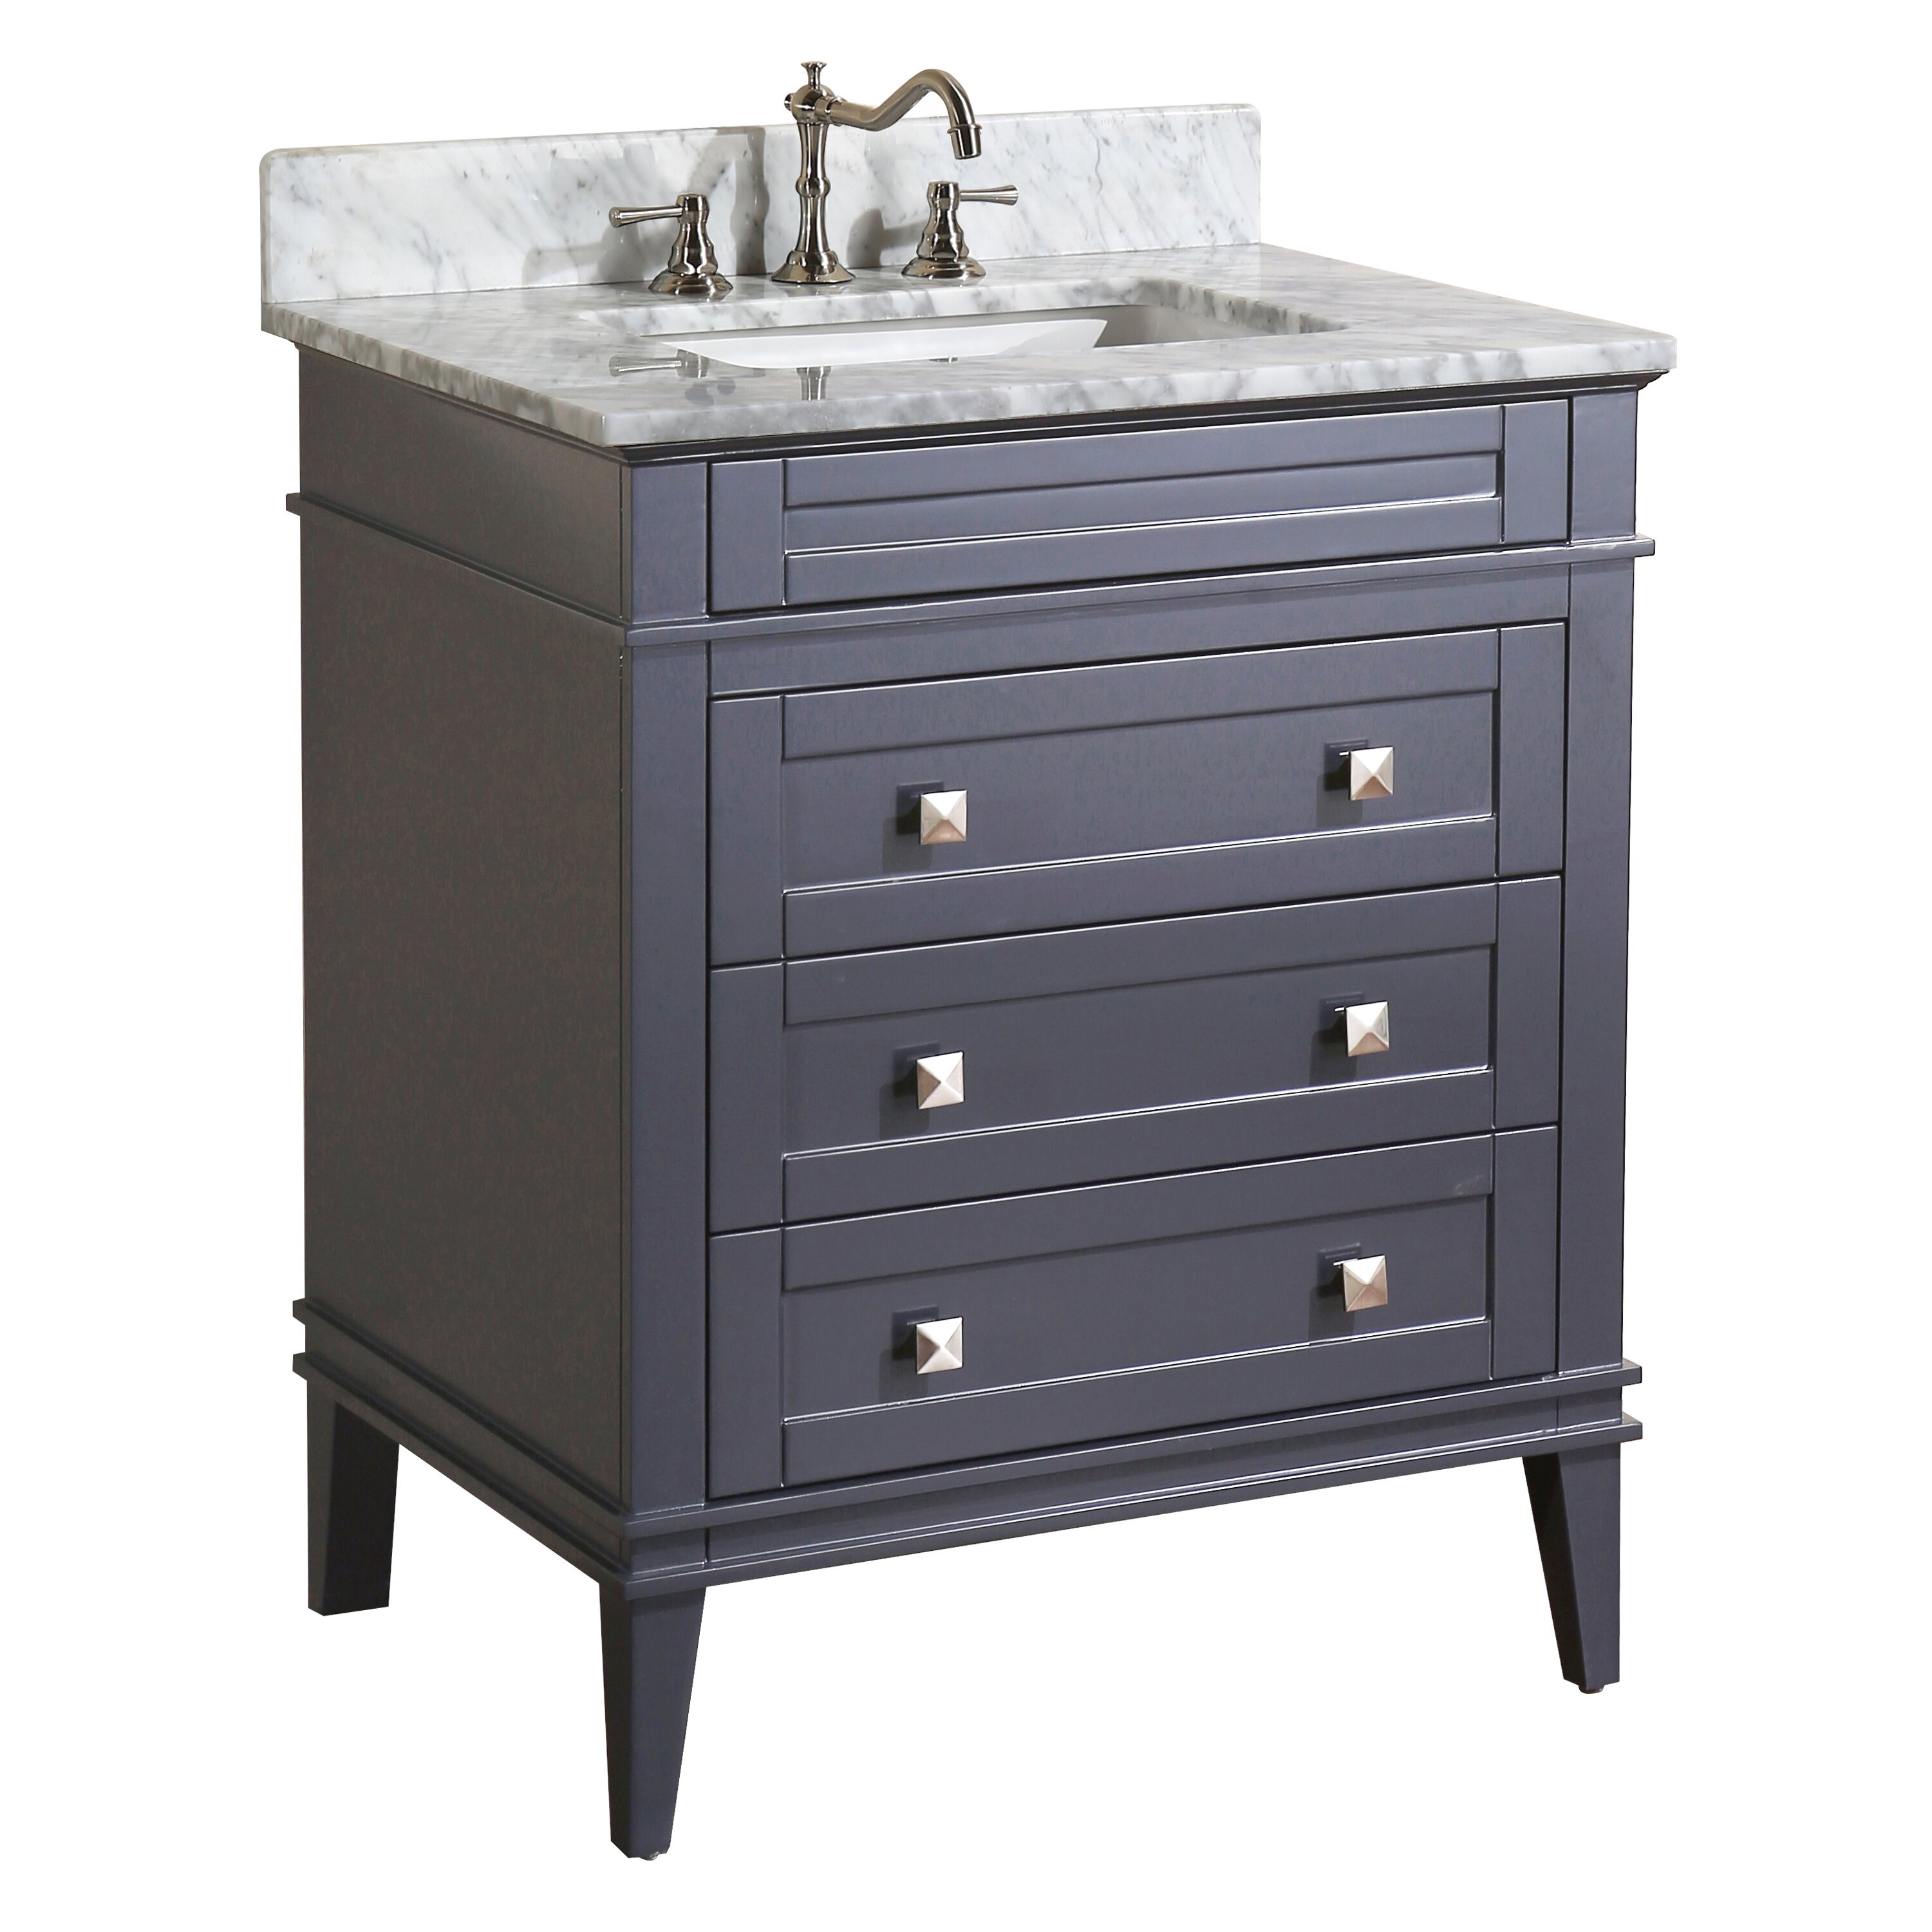 36 bathroom vanity without top idea | a1houston